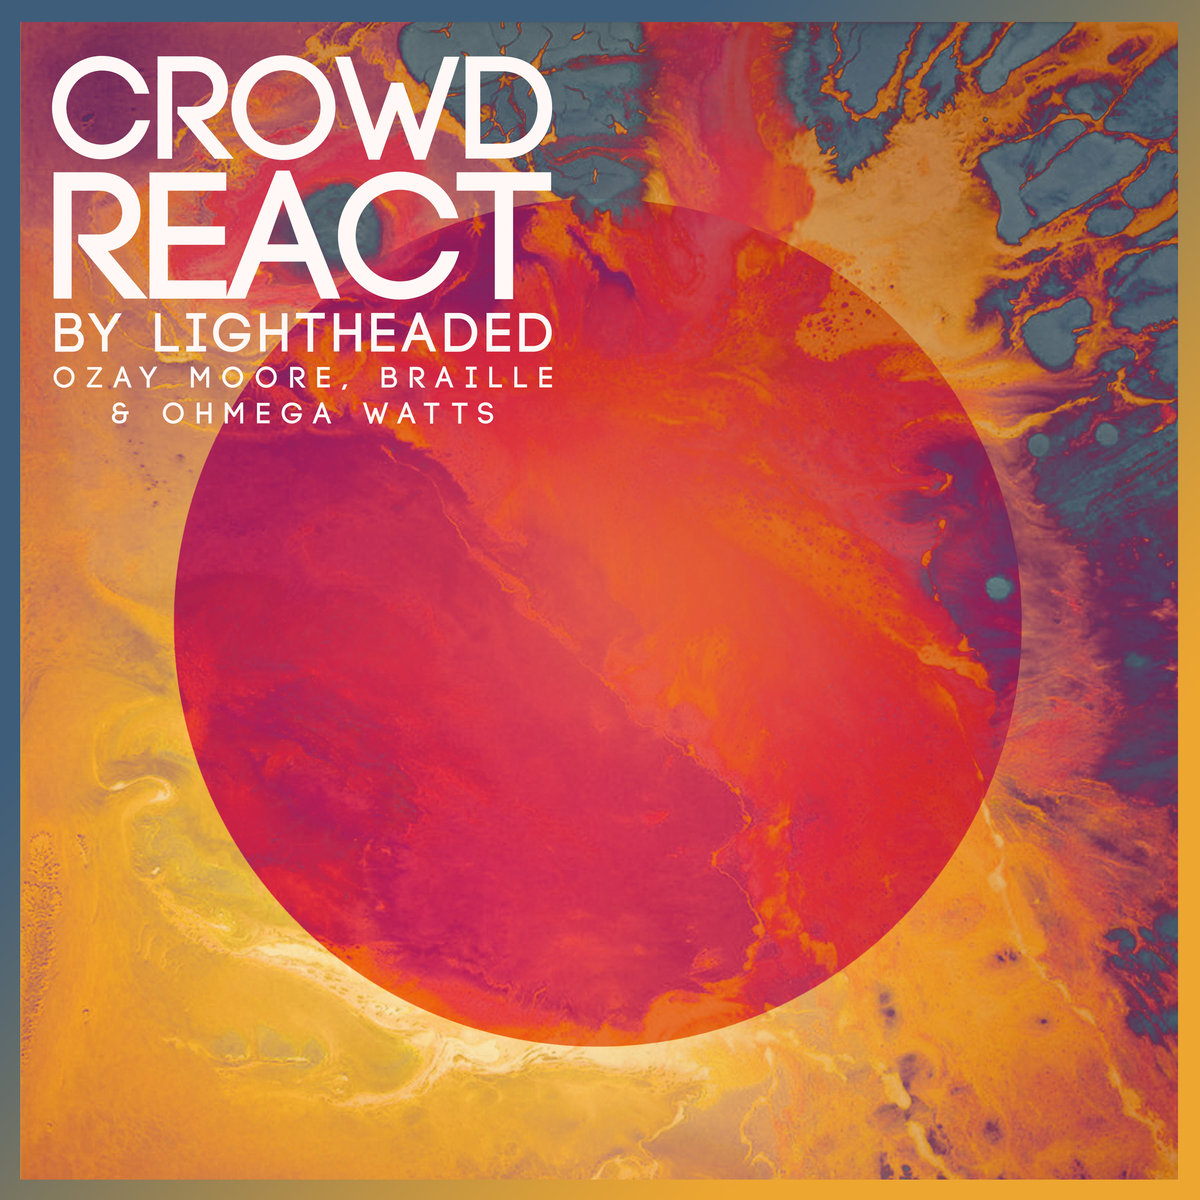 Crowd_react